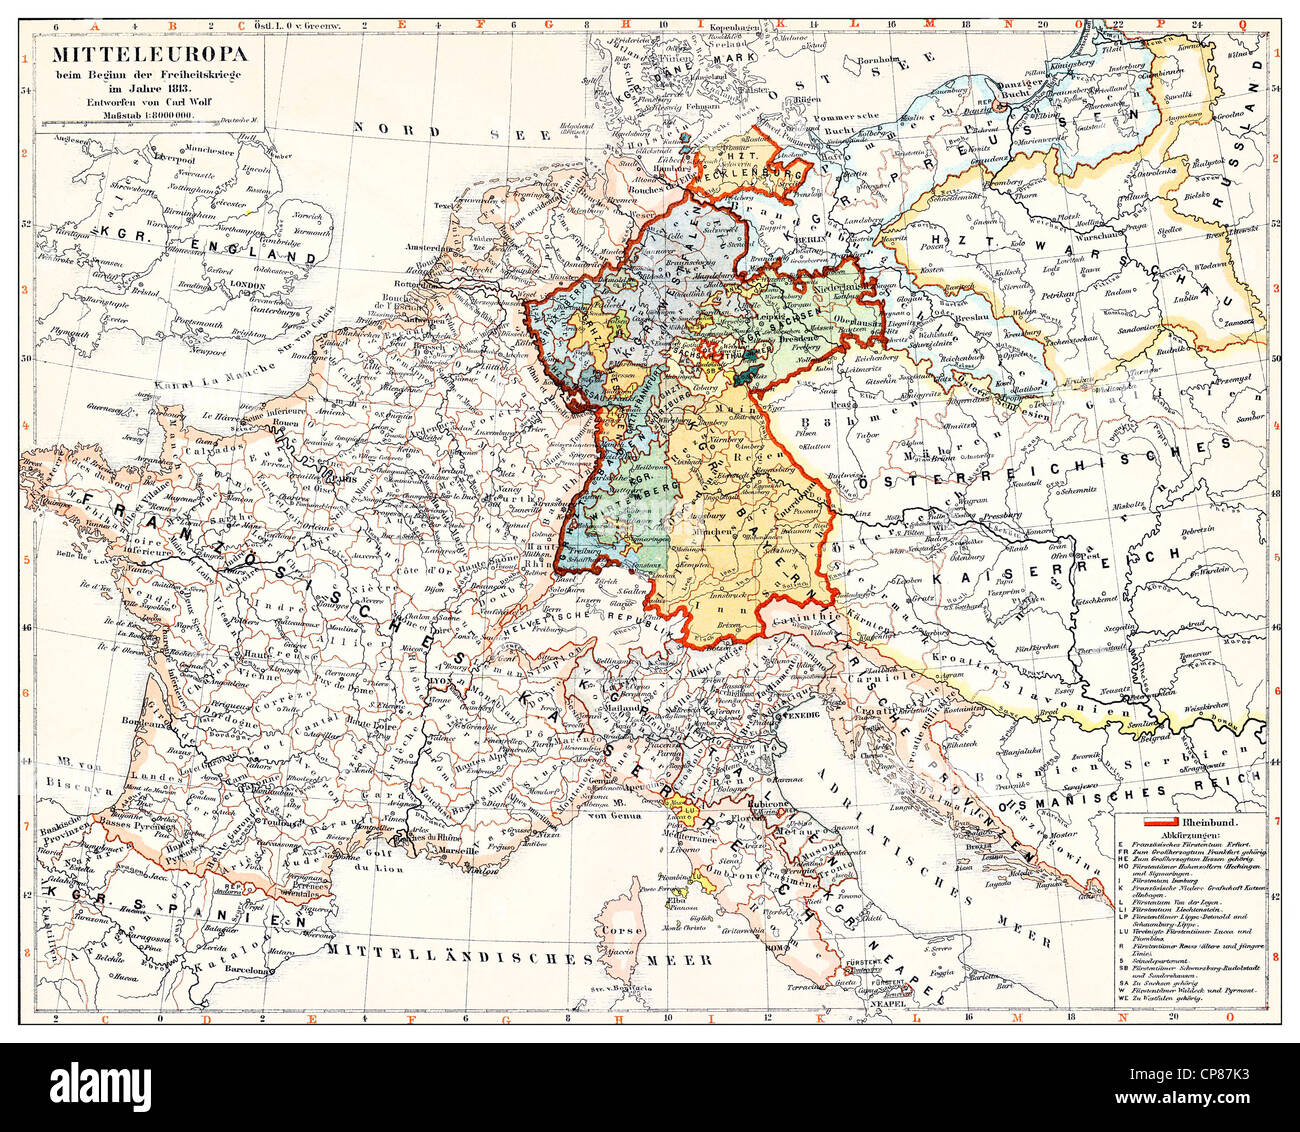 Historical map of Germany and Central Europe at the beginning of the ...